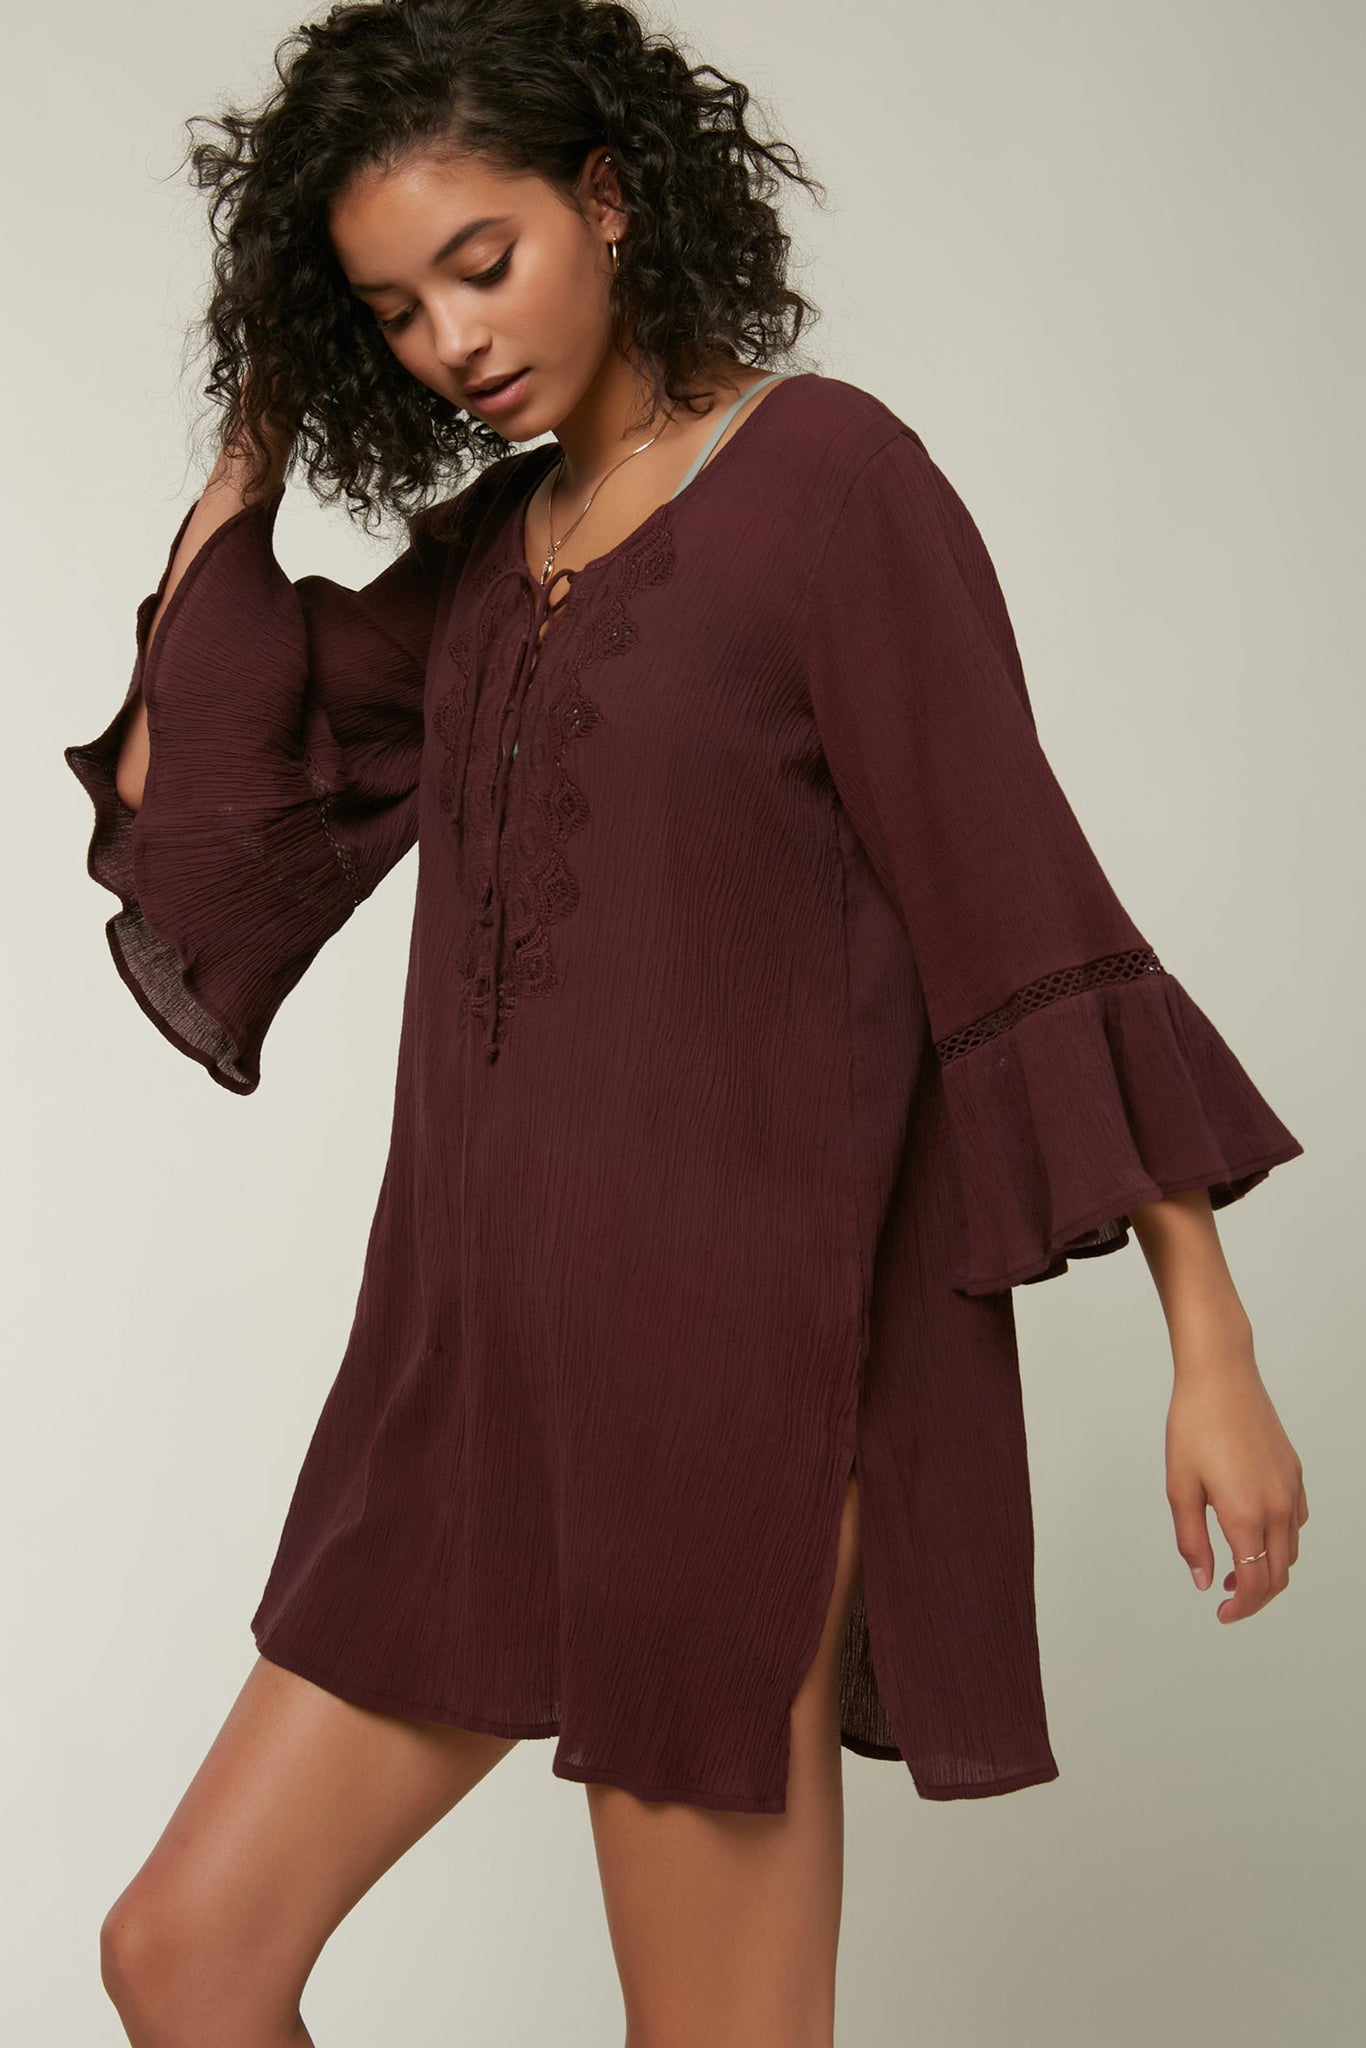 Saltwater Solids Long Sleeve Cover-Up - Wine | O'Neill